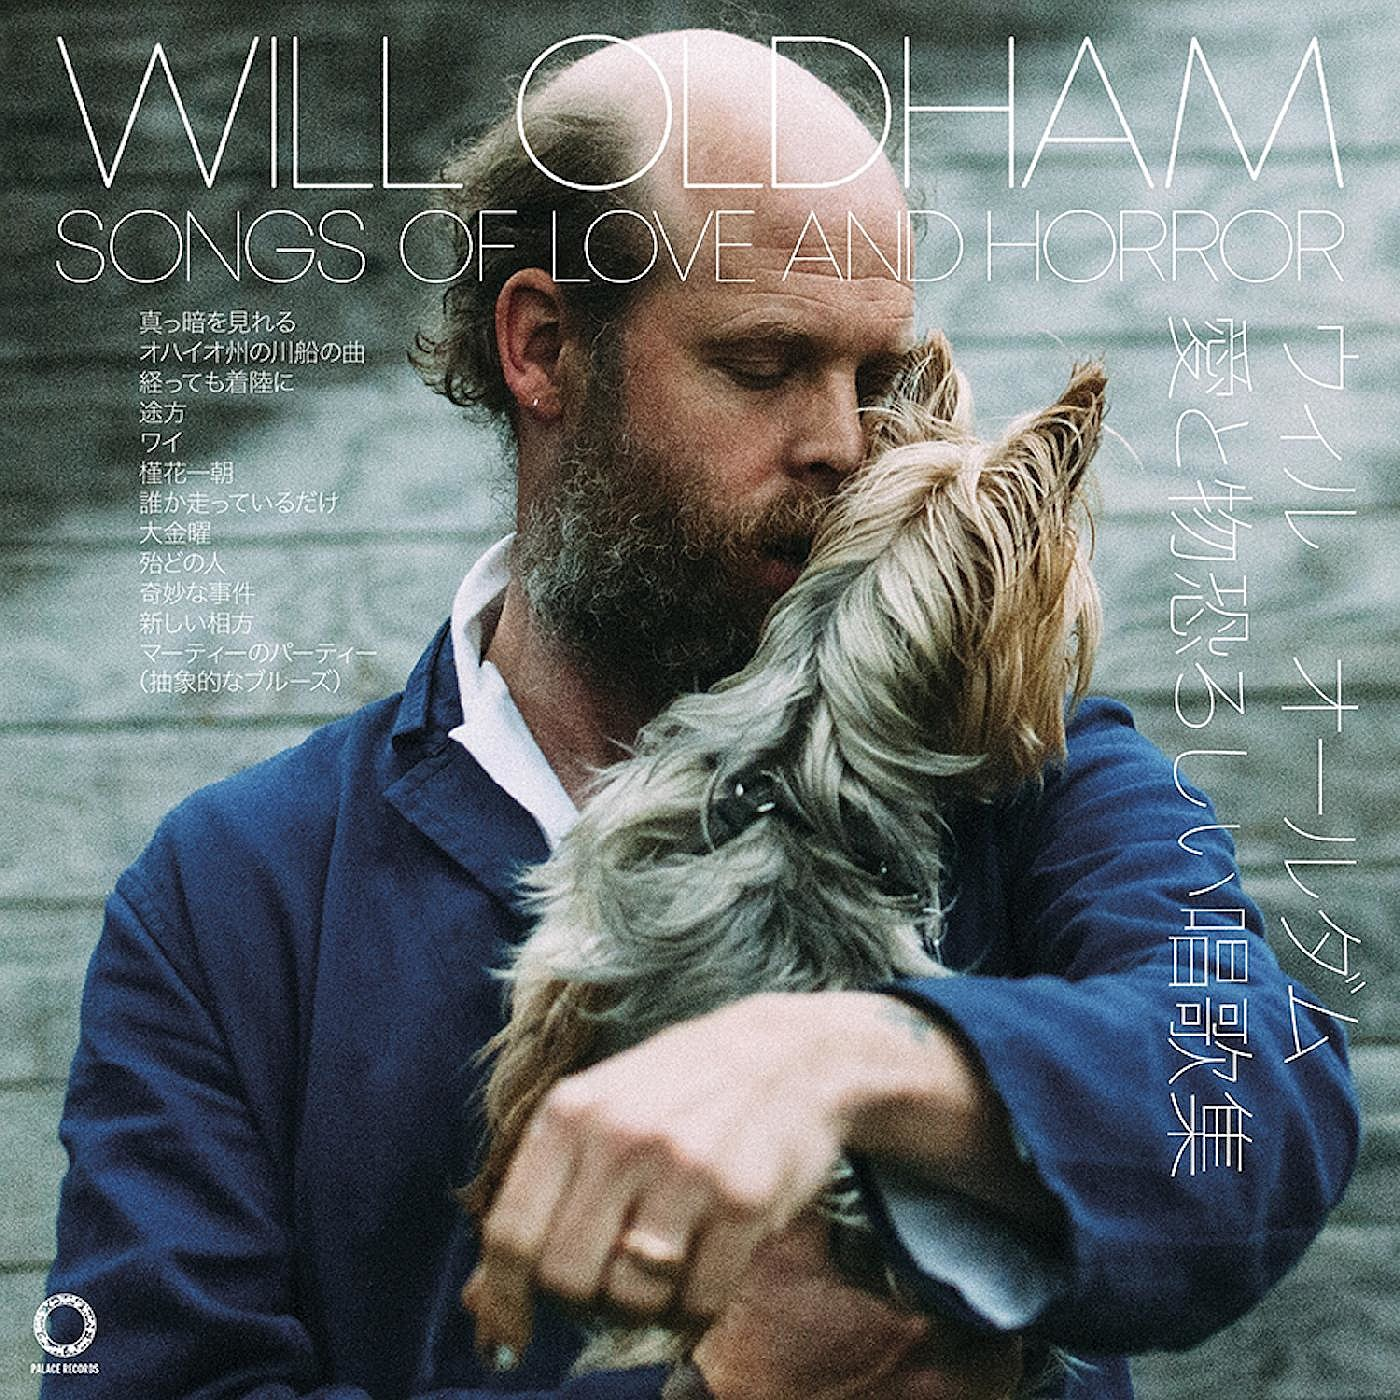 will-songs-of-love-and-horror